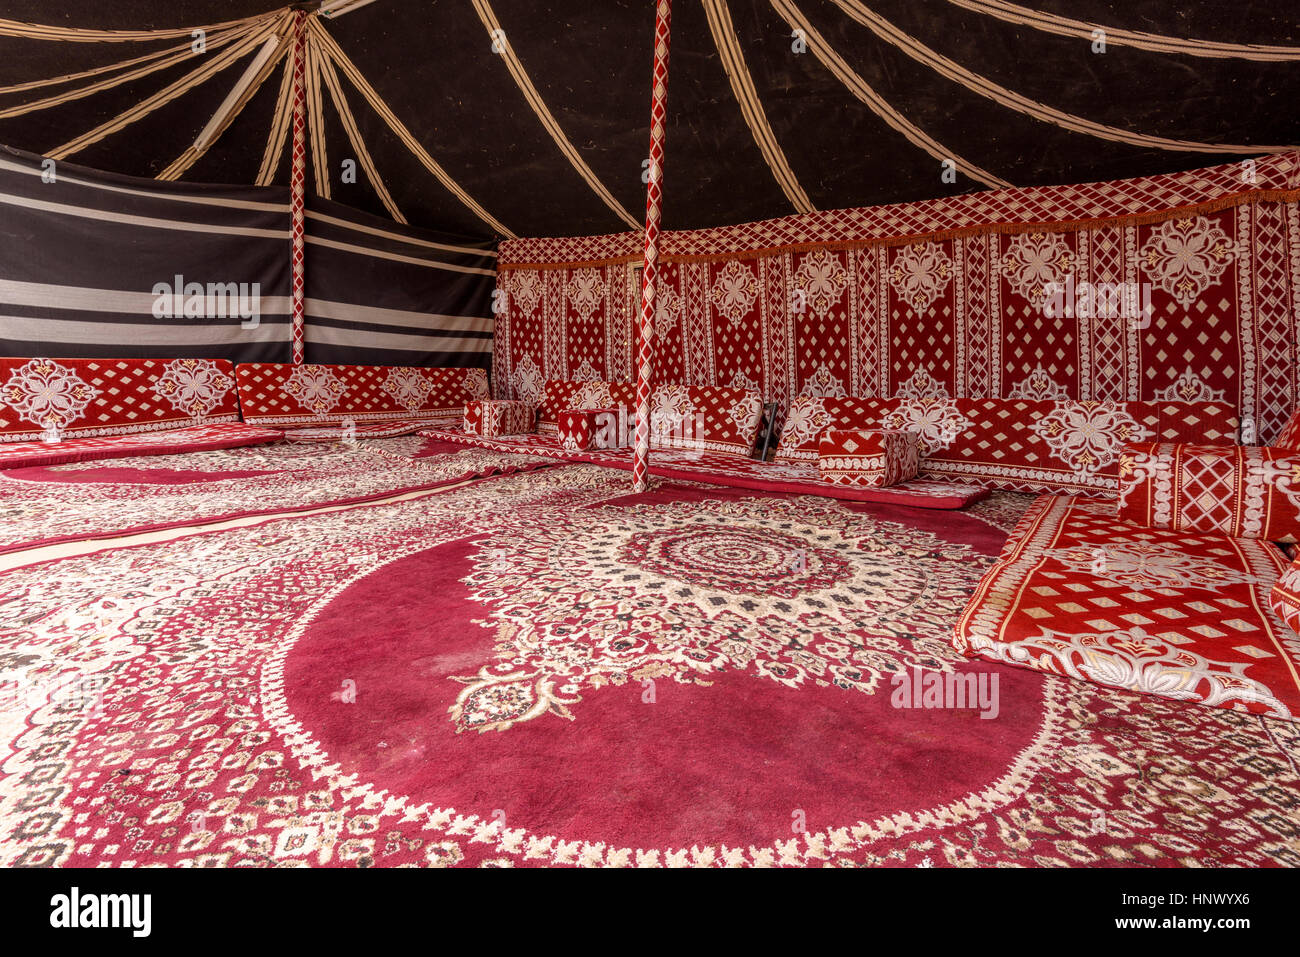 Arabic Bedouin tent interior in Al Ain United Arab Emirates & Arabic Bedouin tent interior in Al Ain United Arab Emirates Stock ...